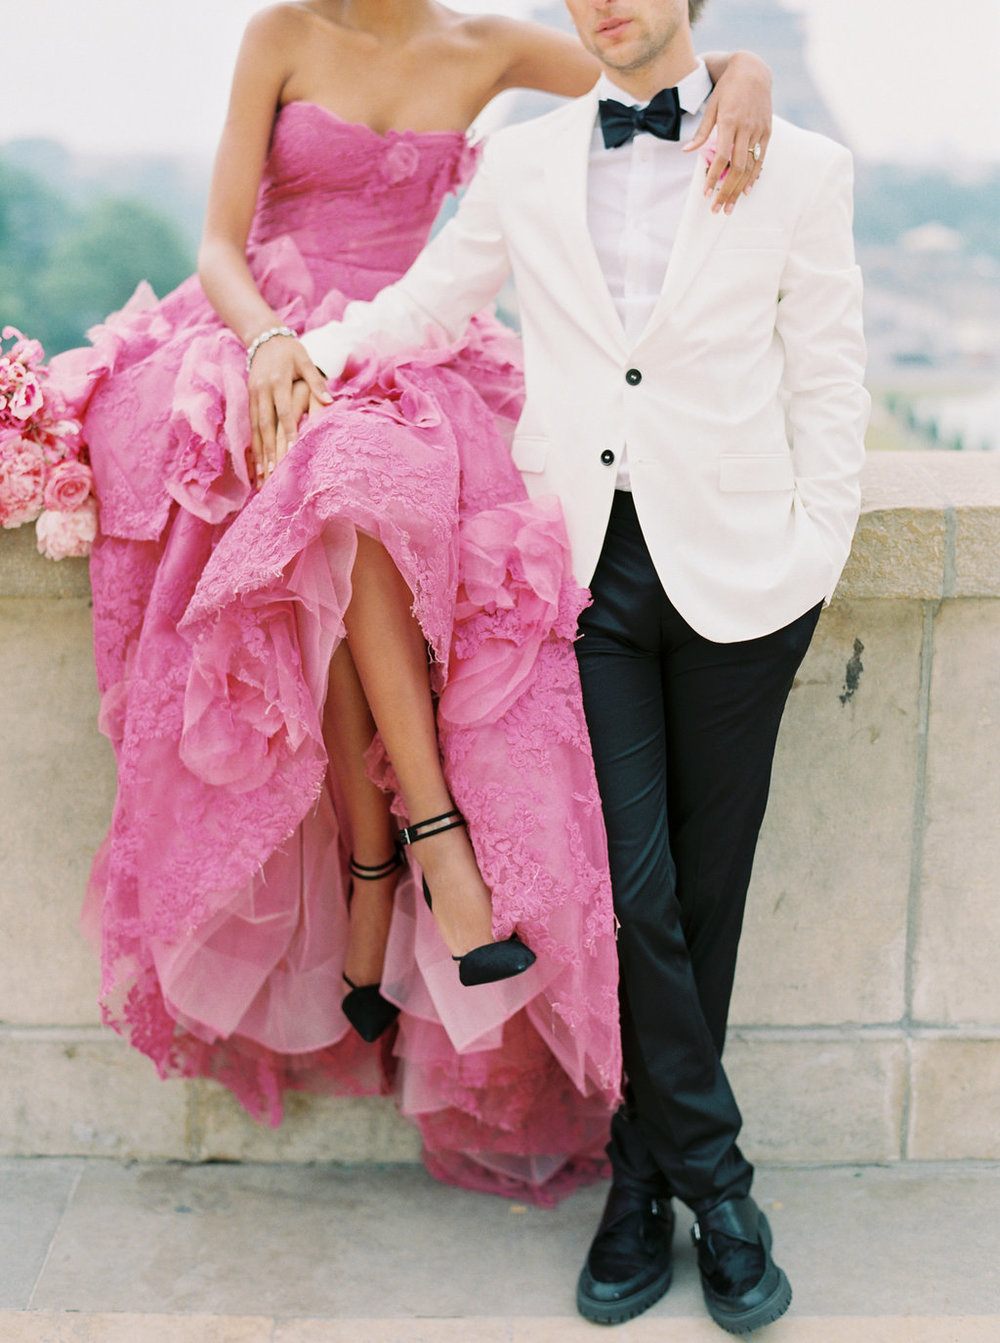 Trocadero Paris Elopement with pink Marchesa gown by East Made Event Company and Sophie Kaye Photography(116of121).jpg